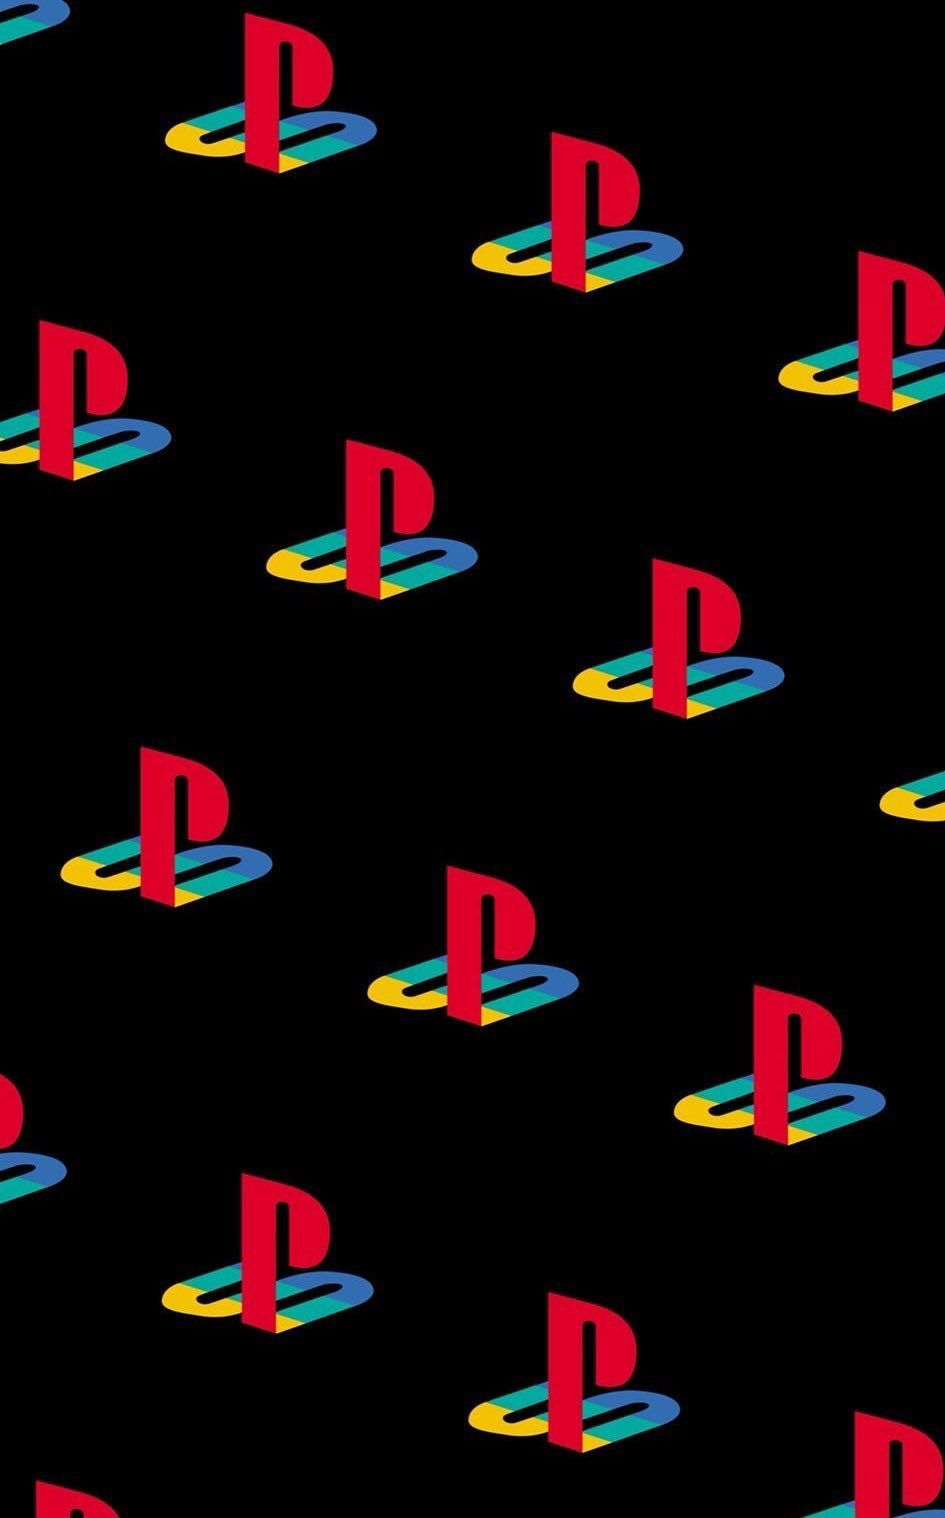 Gamer Playstation Ideas Of Playstation Playstation In 2020 Gaming Wallpapers Game Wallpaper Iphone Vaporwave Wallpaper